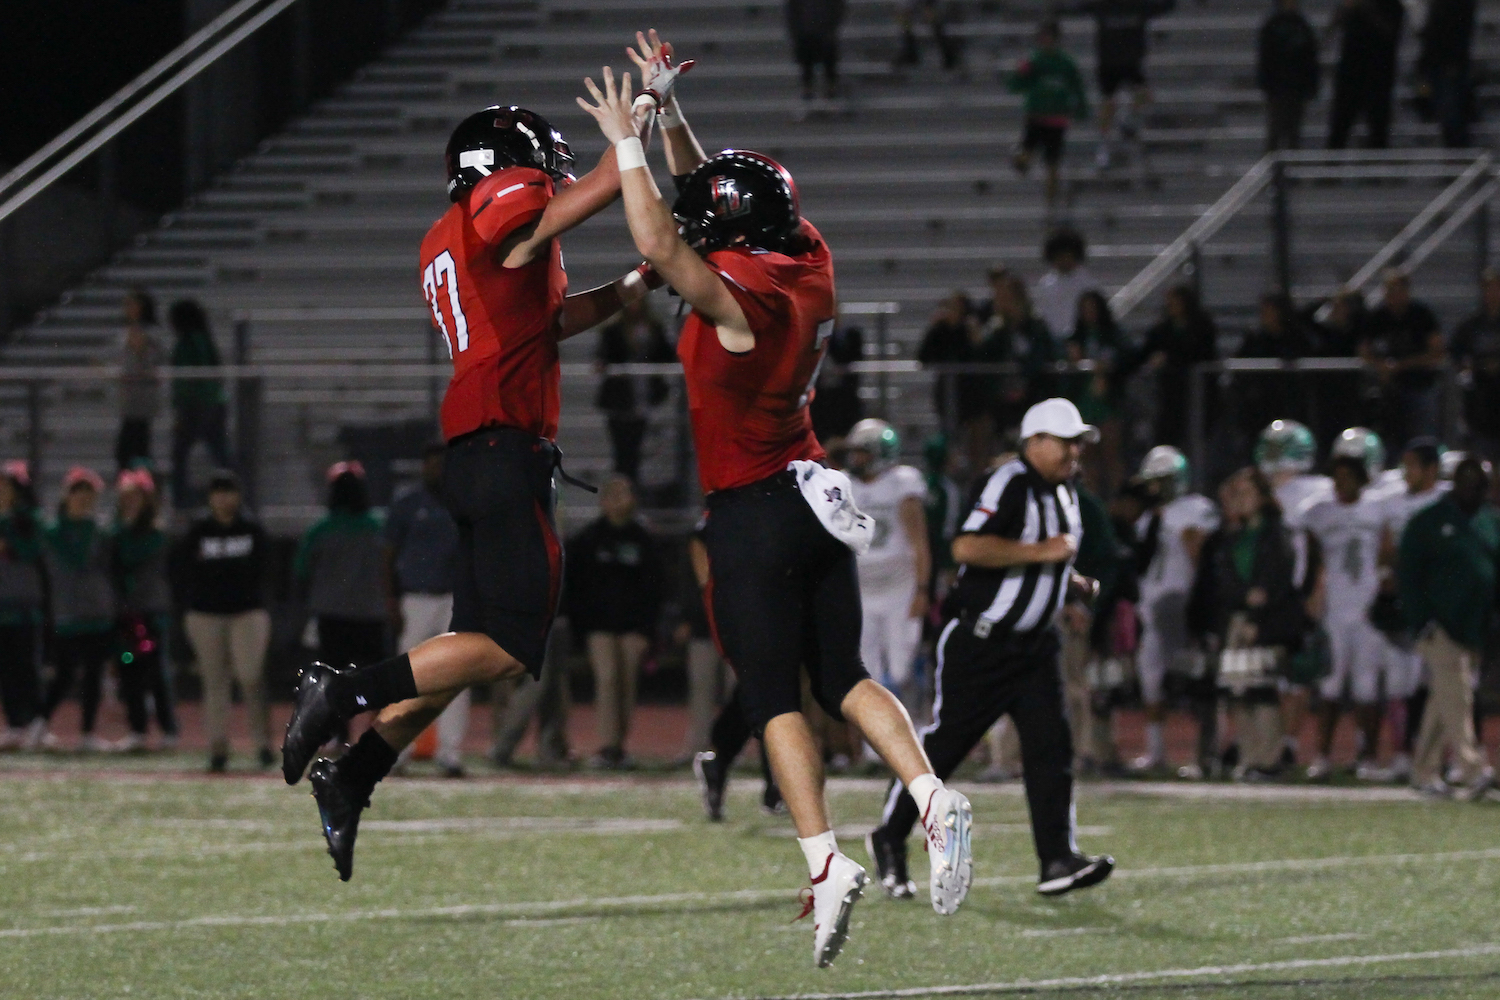 Defensive+back+Quinn+McDermott+and+quarterback+Carson+Collins+celebrate+after+a+touchdown.